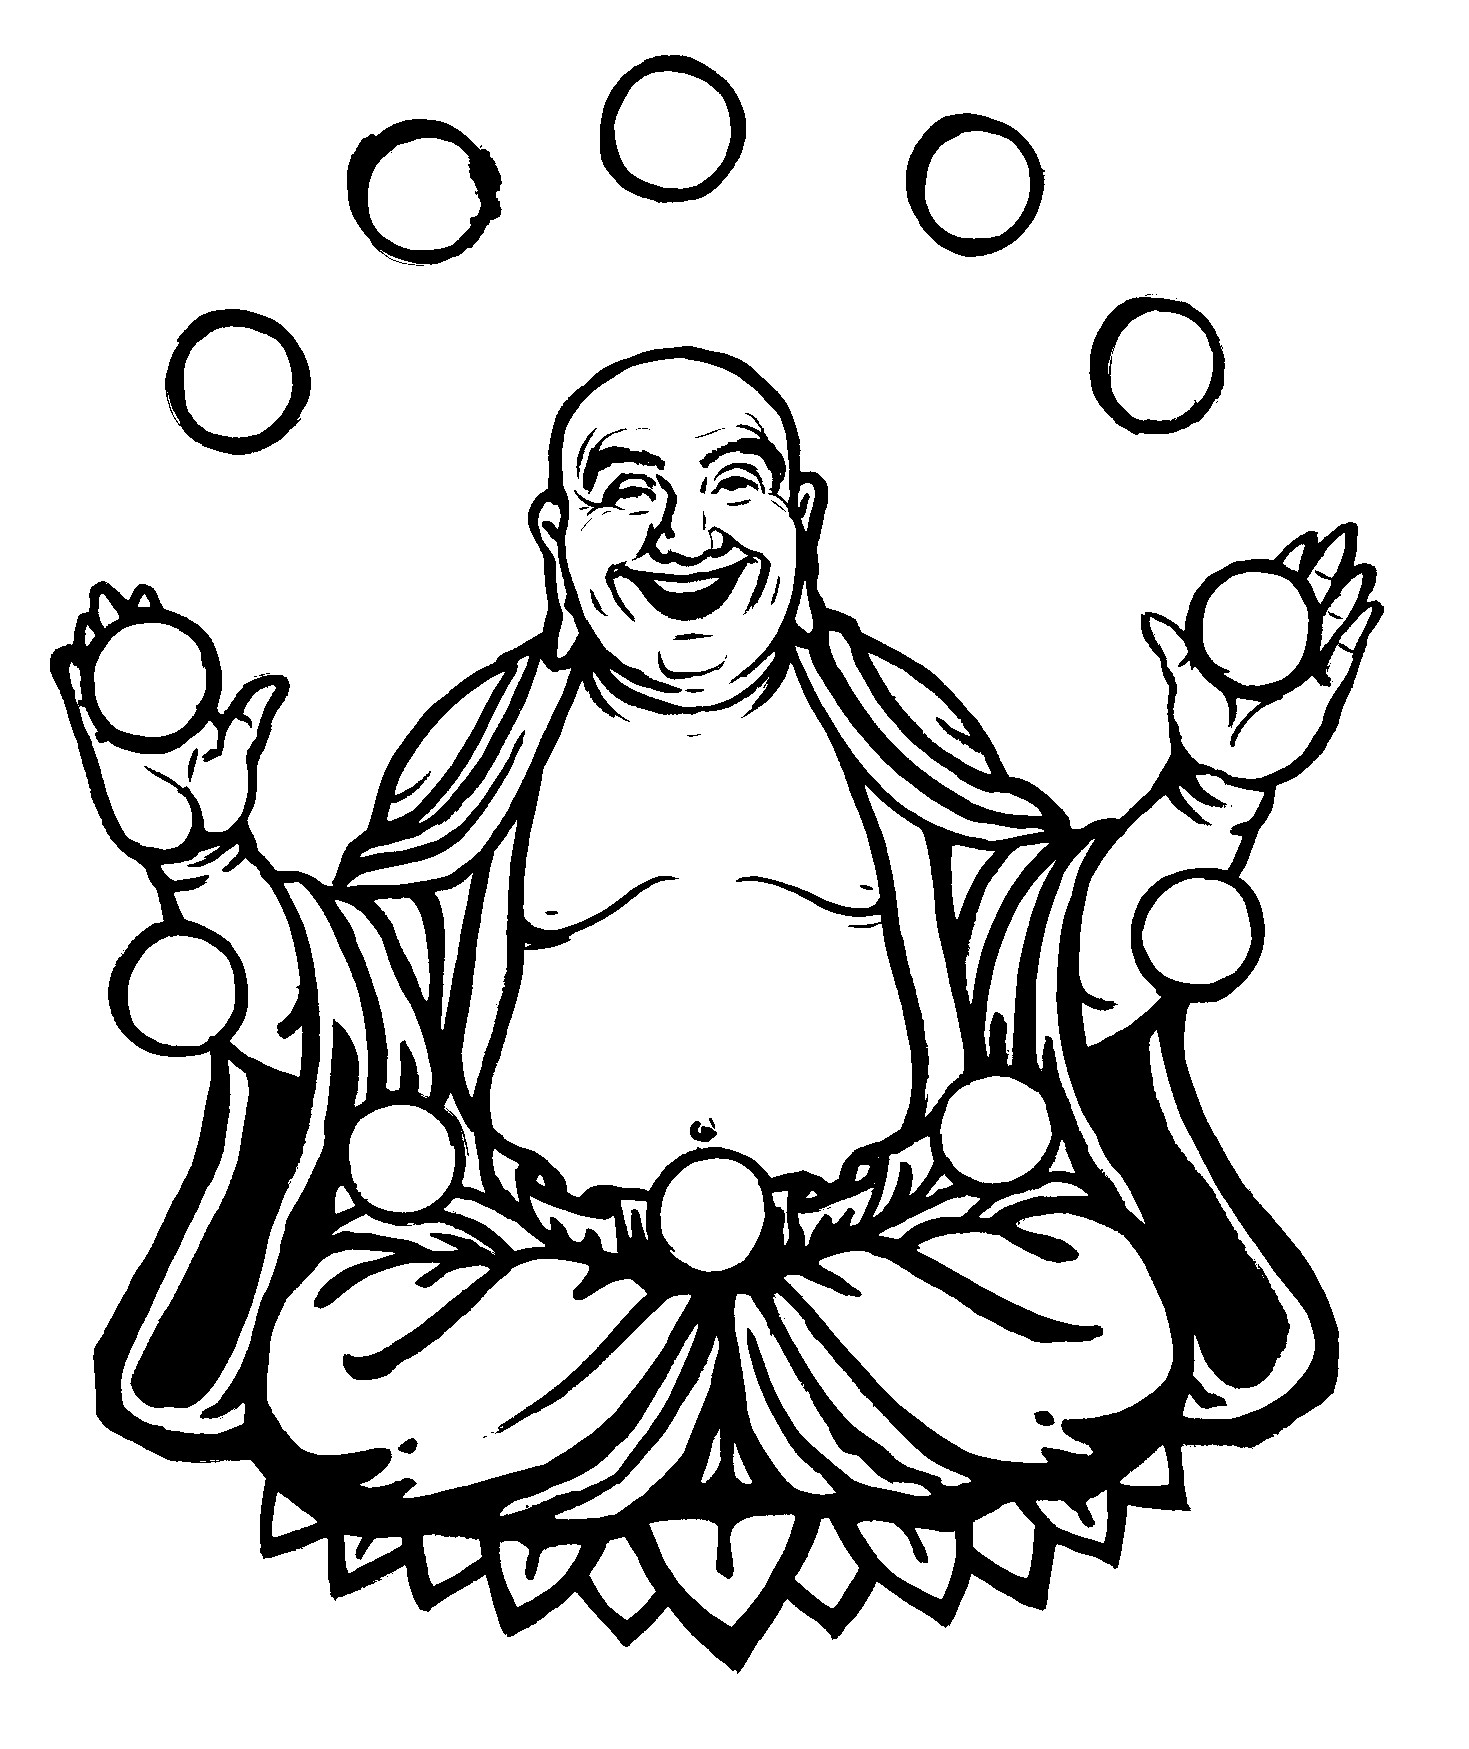 Simple Buddha Drawing - ClipArt Best